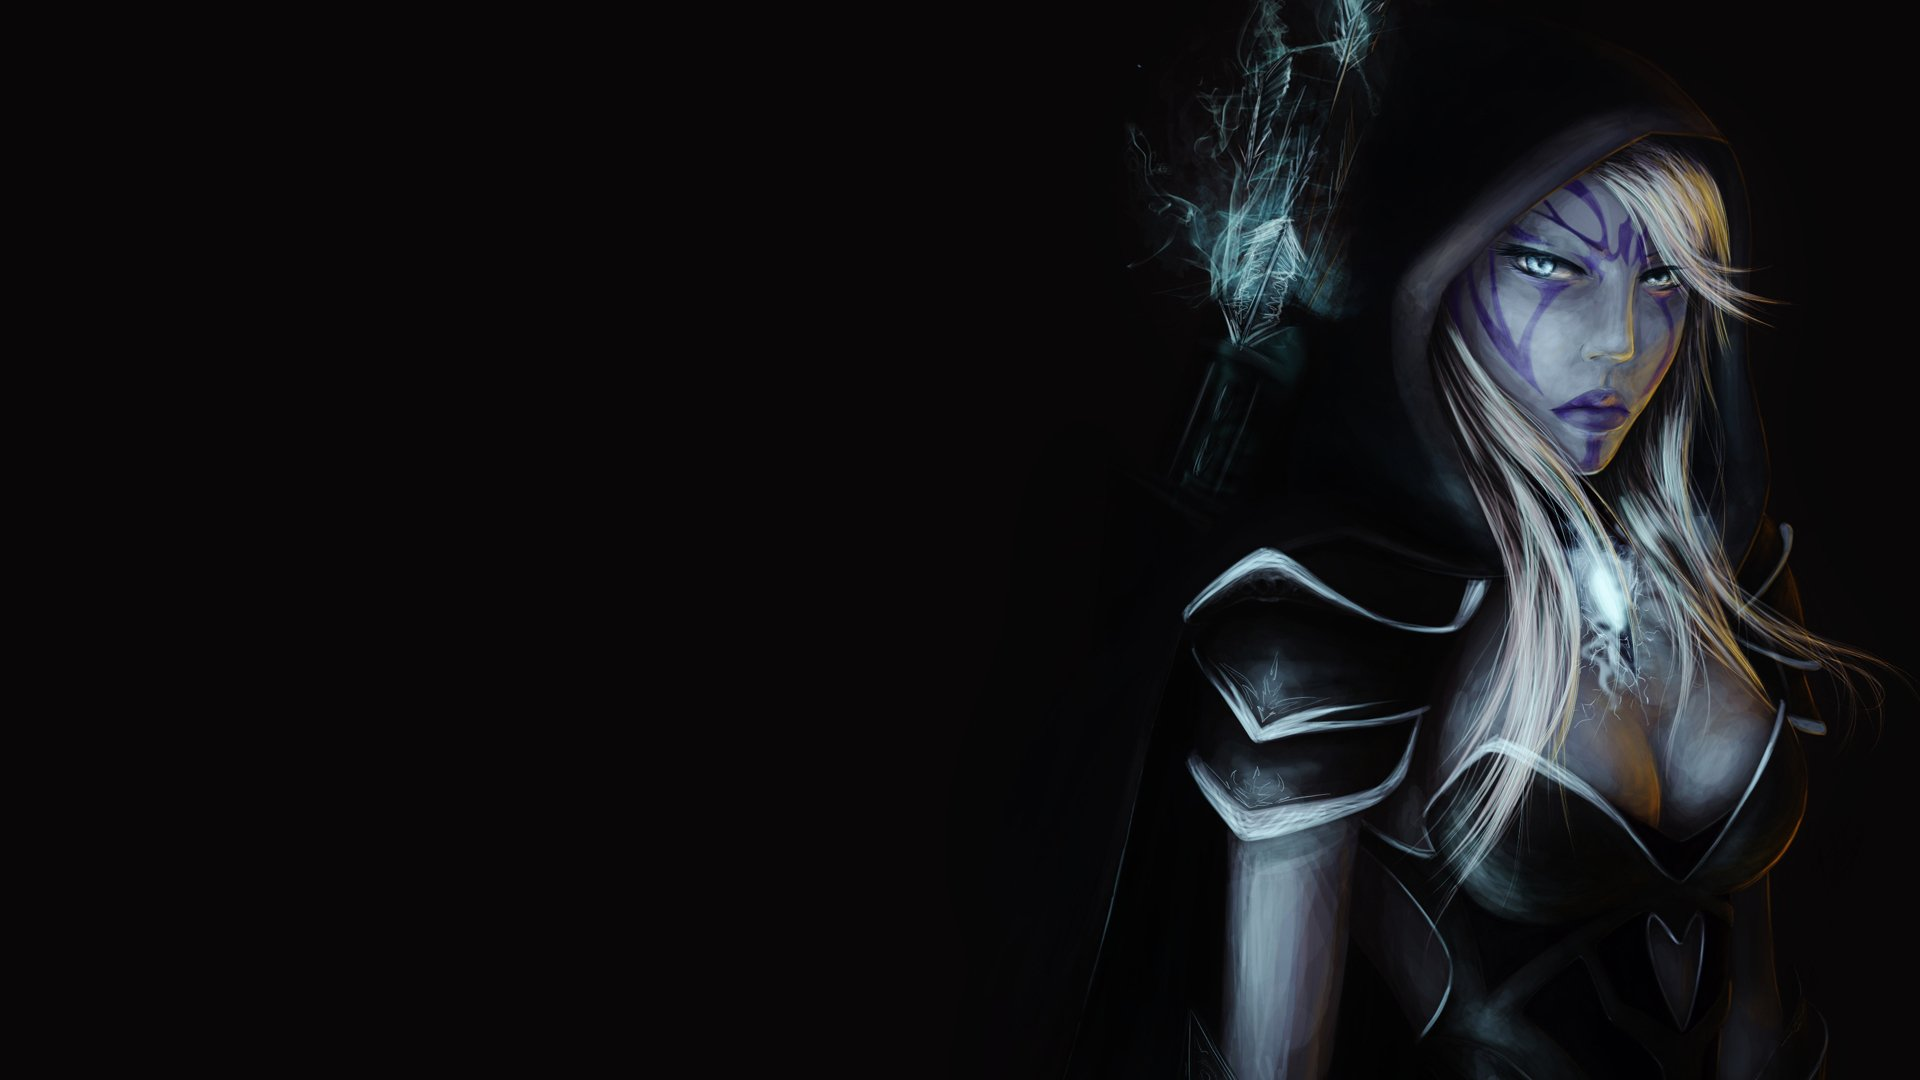 Hd wallpaper dota 2 - Dota 2 Juggernaut Hd Wallpaper Background Id 387546